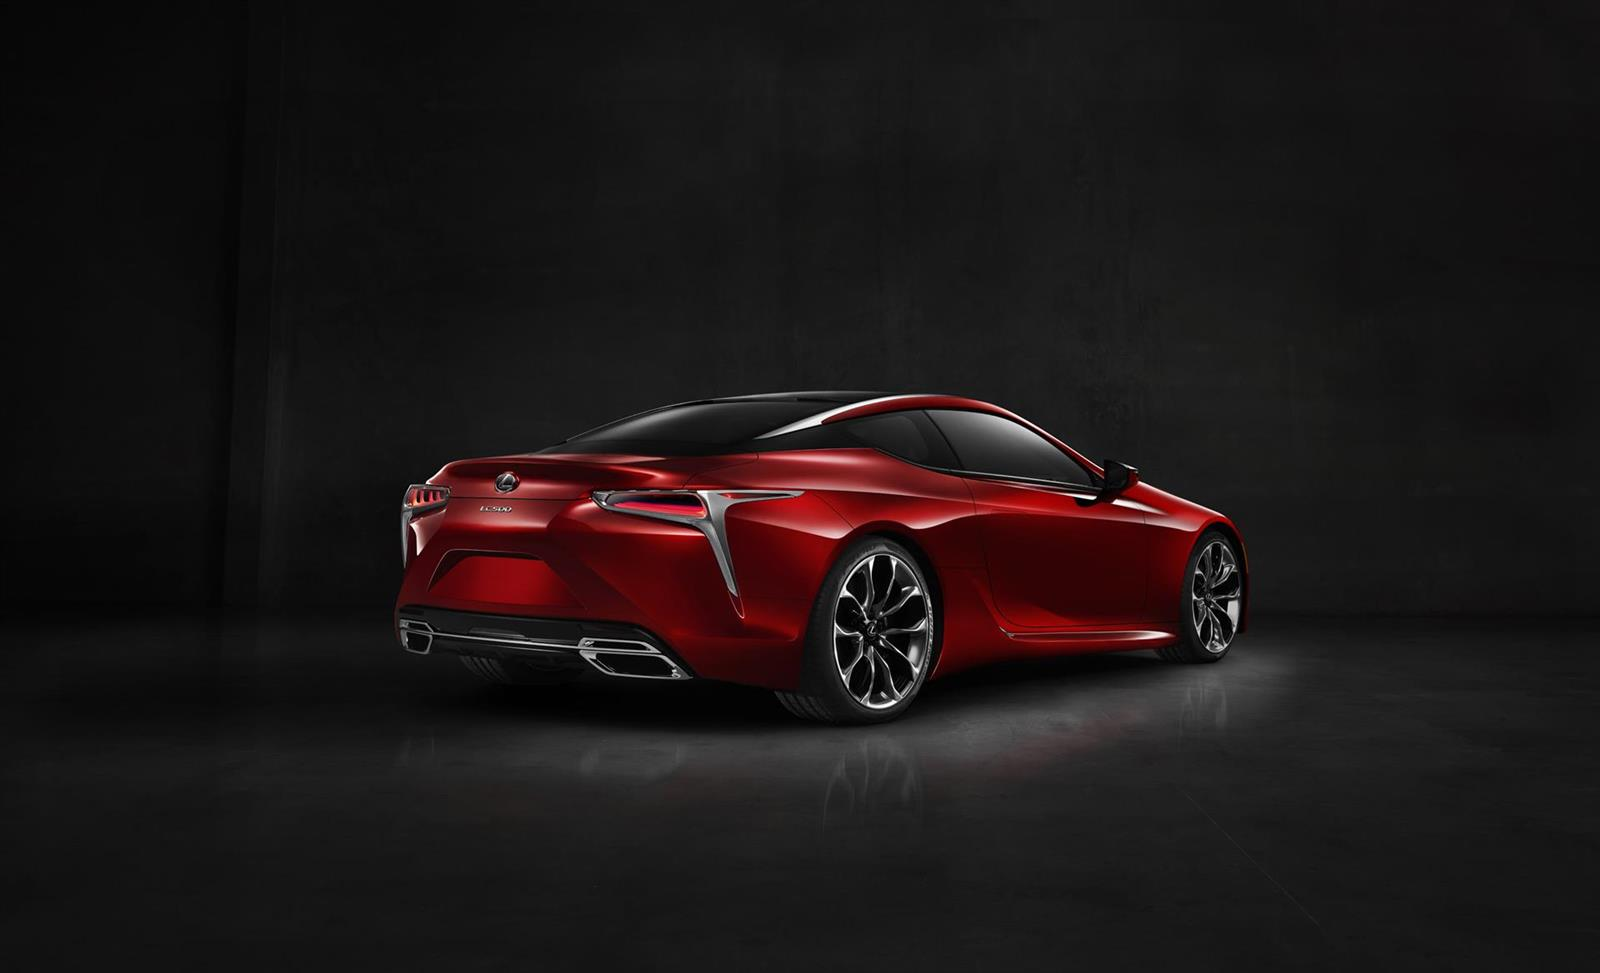 2017 lexus lc 500 lexus new flagship coupe. Black Bedroom Furniture Sets. Home Design Ideas